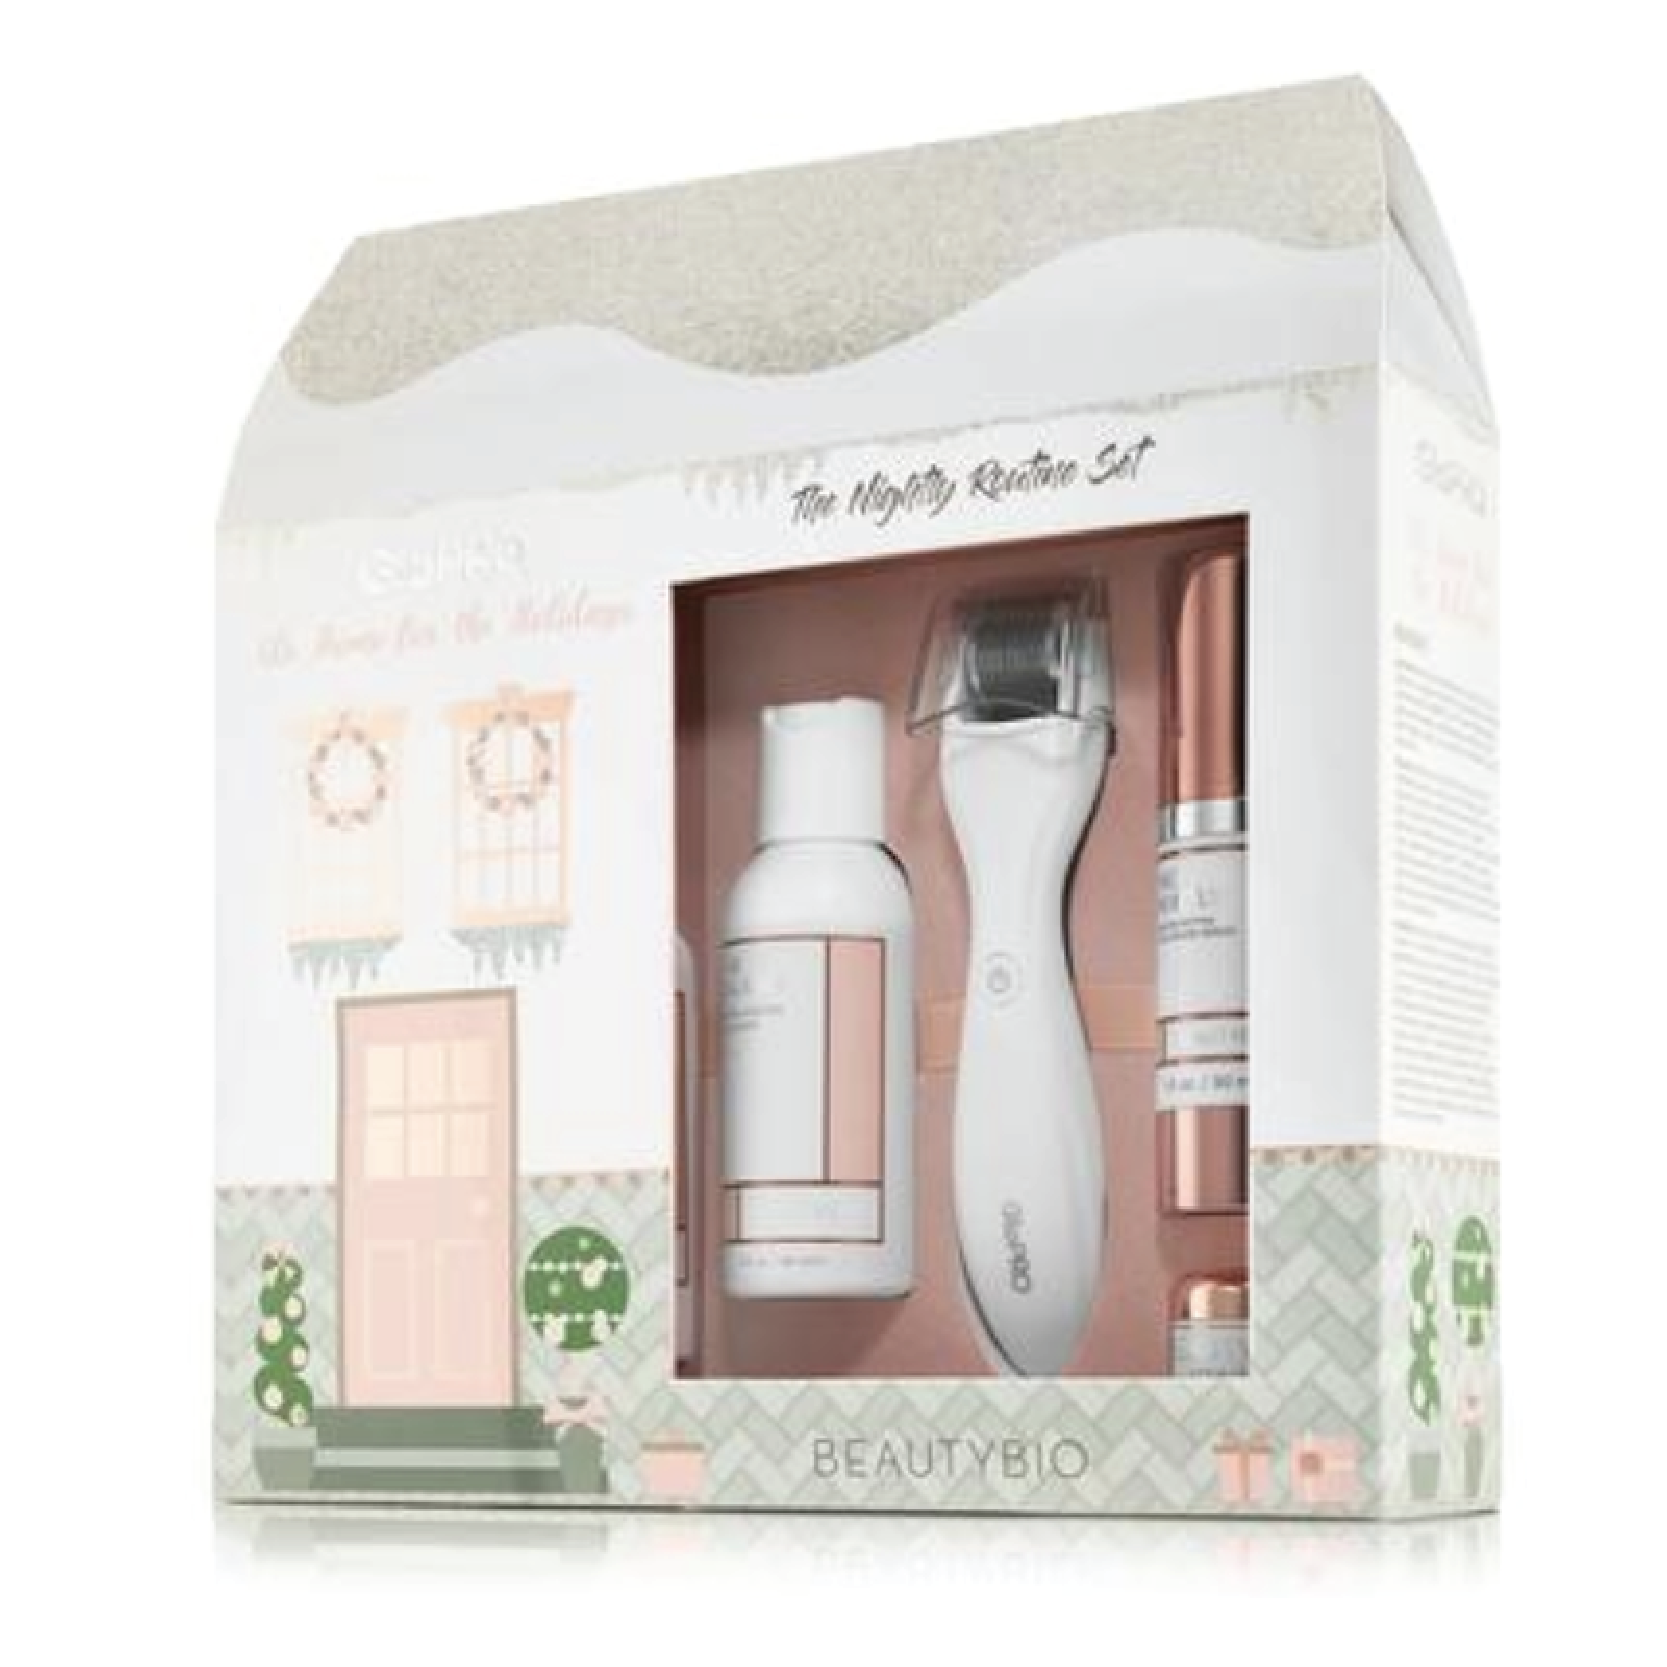 Beauty Bio Nightly Routine Set - $249 at Beauty BioThis is the perfect luxe gift for someone who loves skincare and is a pro at it. Microneedling can cost so much money to get done at a spa regularly, and this kit is an amazing way to get it done at home.